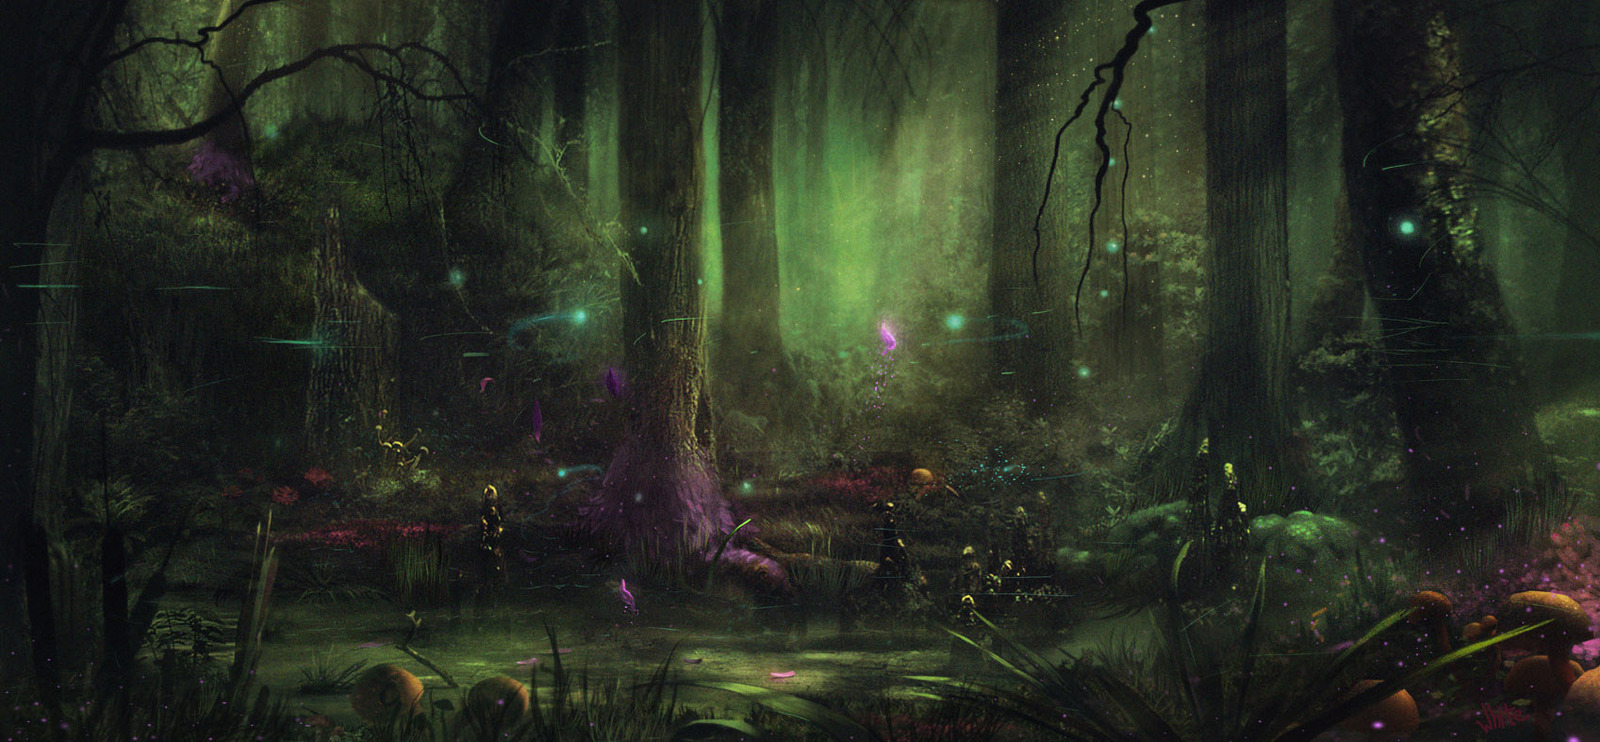 fantasy-forest-art-free-desktop-8.jpg